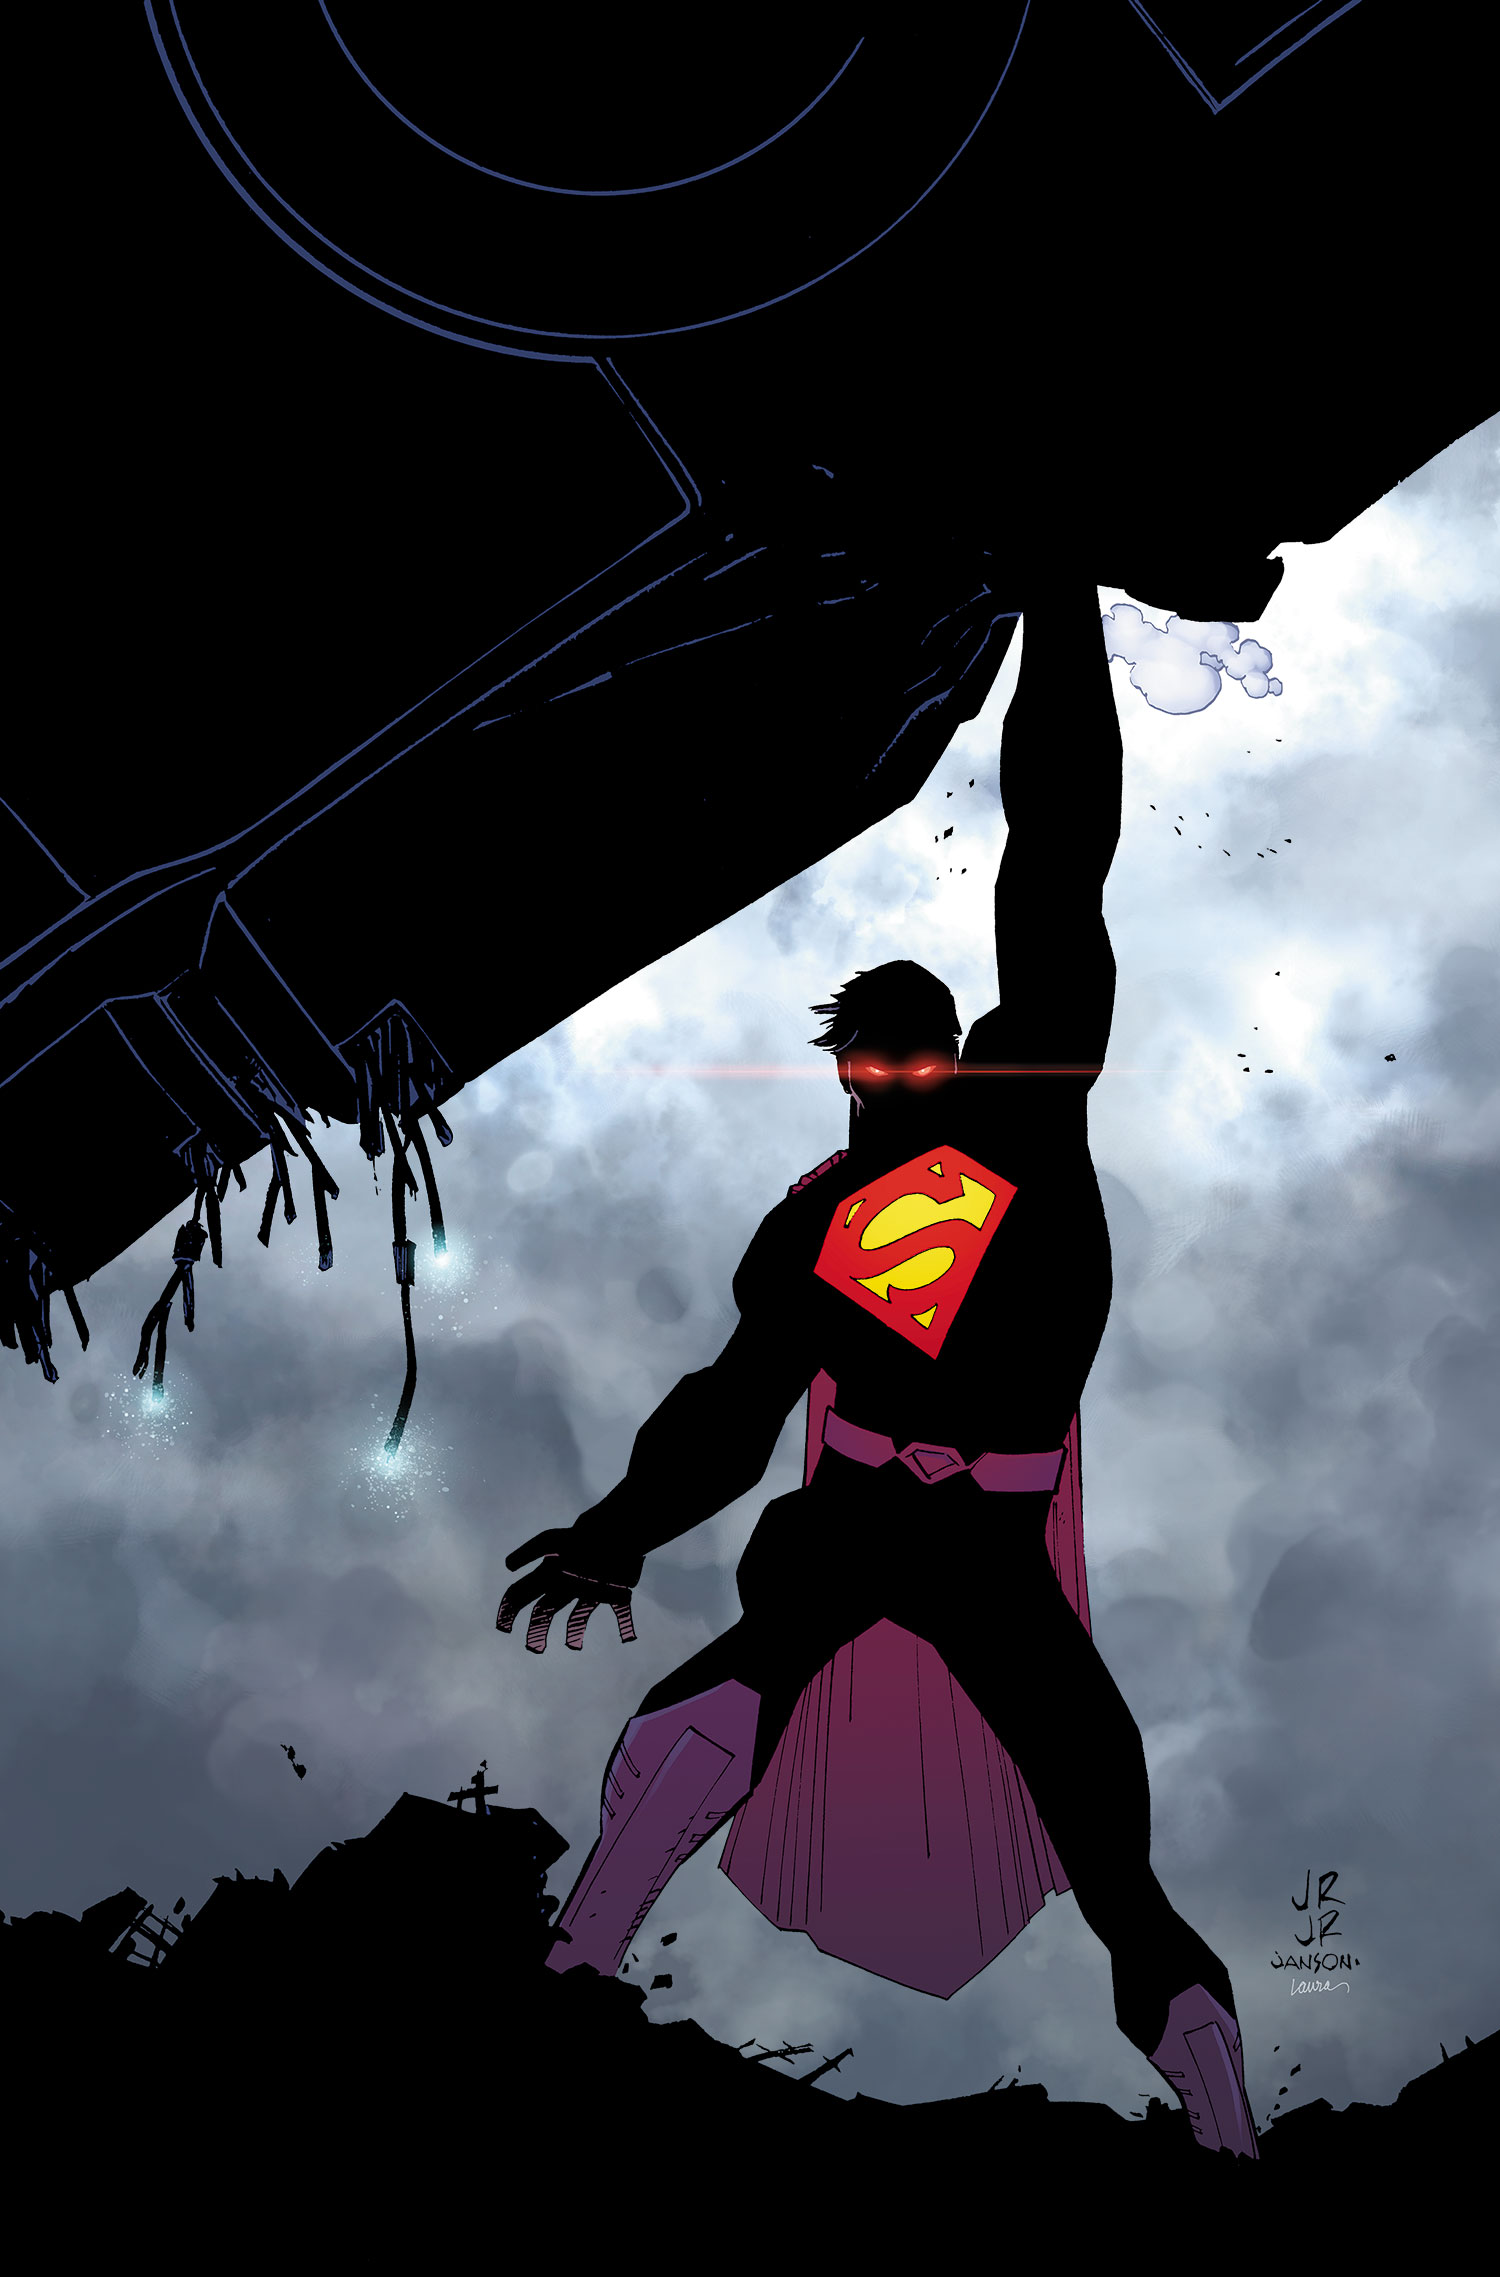 Where Can I Get A 1080p Wallpaper Of This Great Comic Book Cover Superman Vol 3 33 Art By John Romita Jr Think